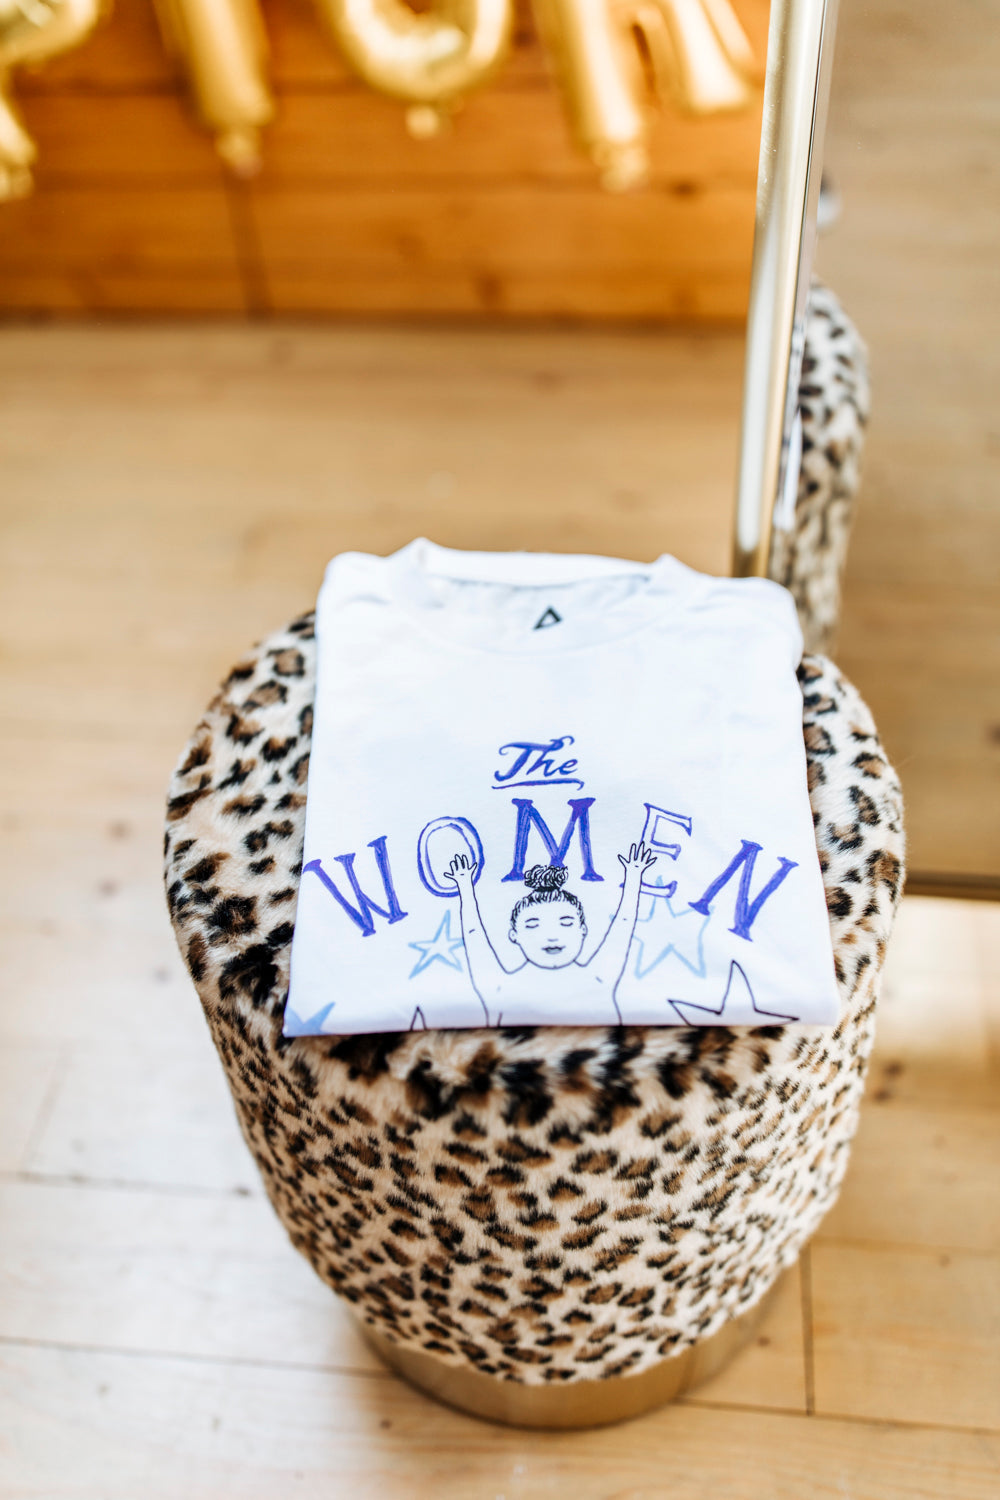 The Women Club Blue T-shirt